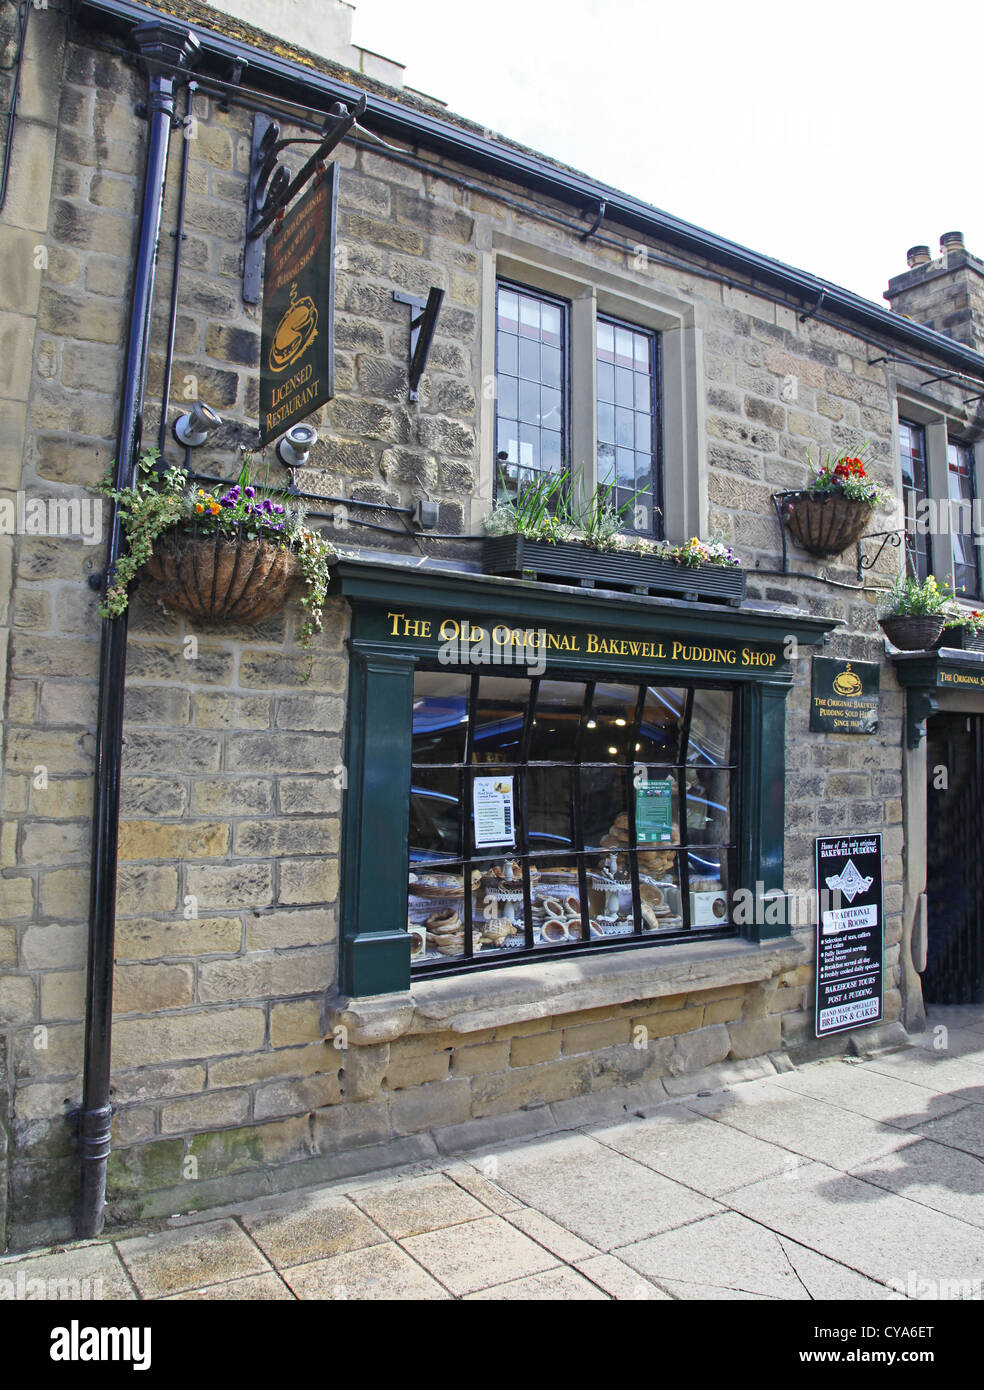 The Original Bakewell Pudding shop in Bakewell Derbyshire Peak District National Park England UK - Stock Image